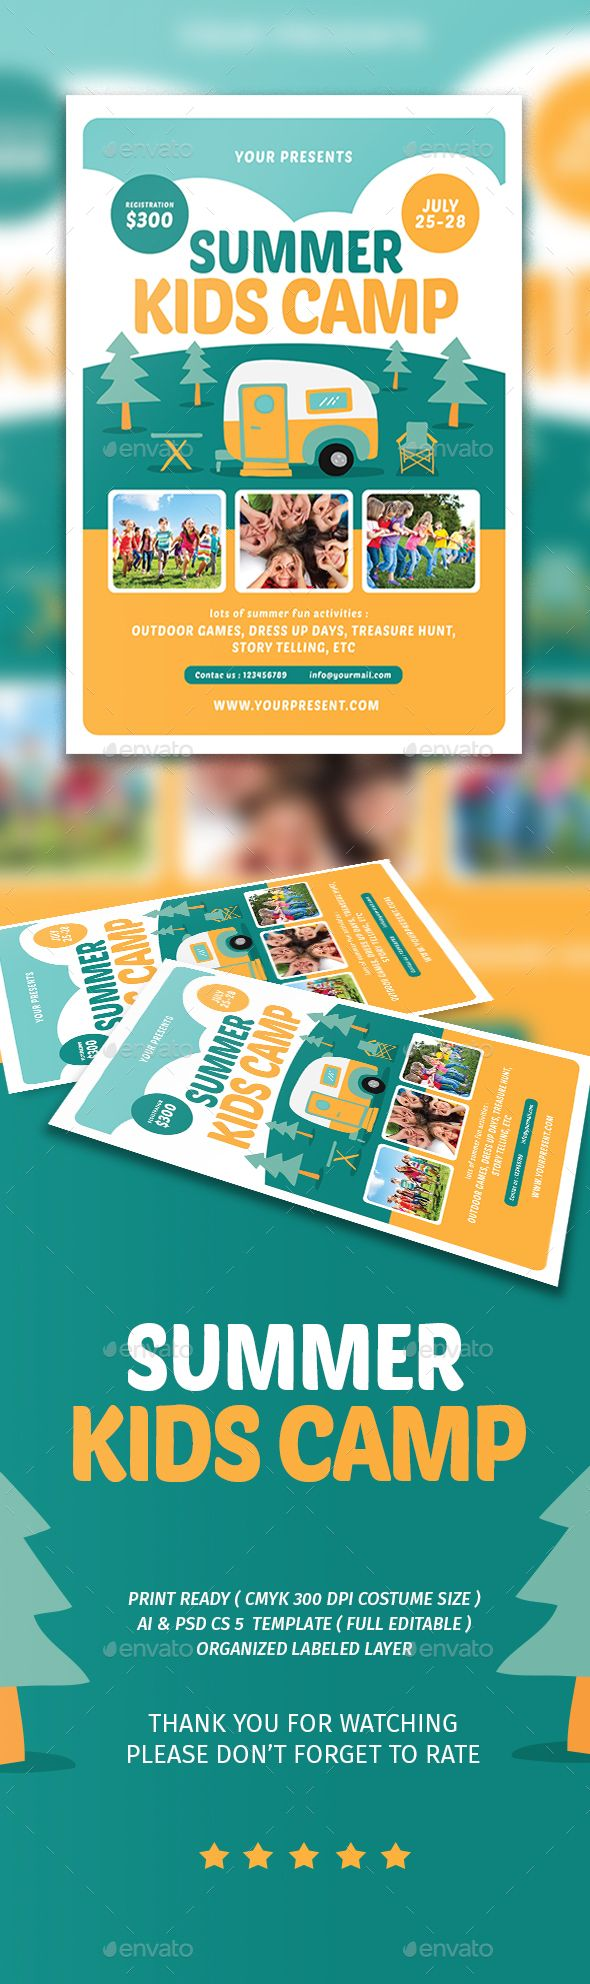 best ideas about event flyers flyer design summer kids camp